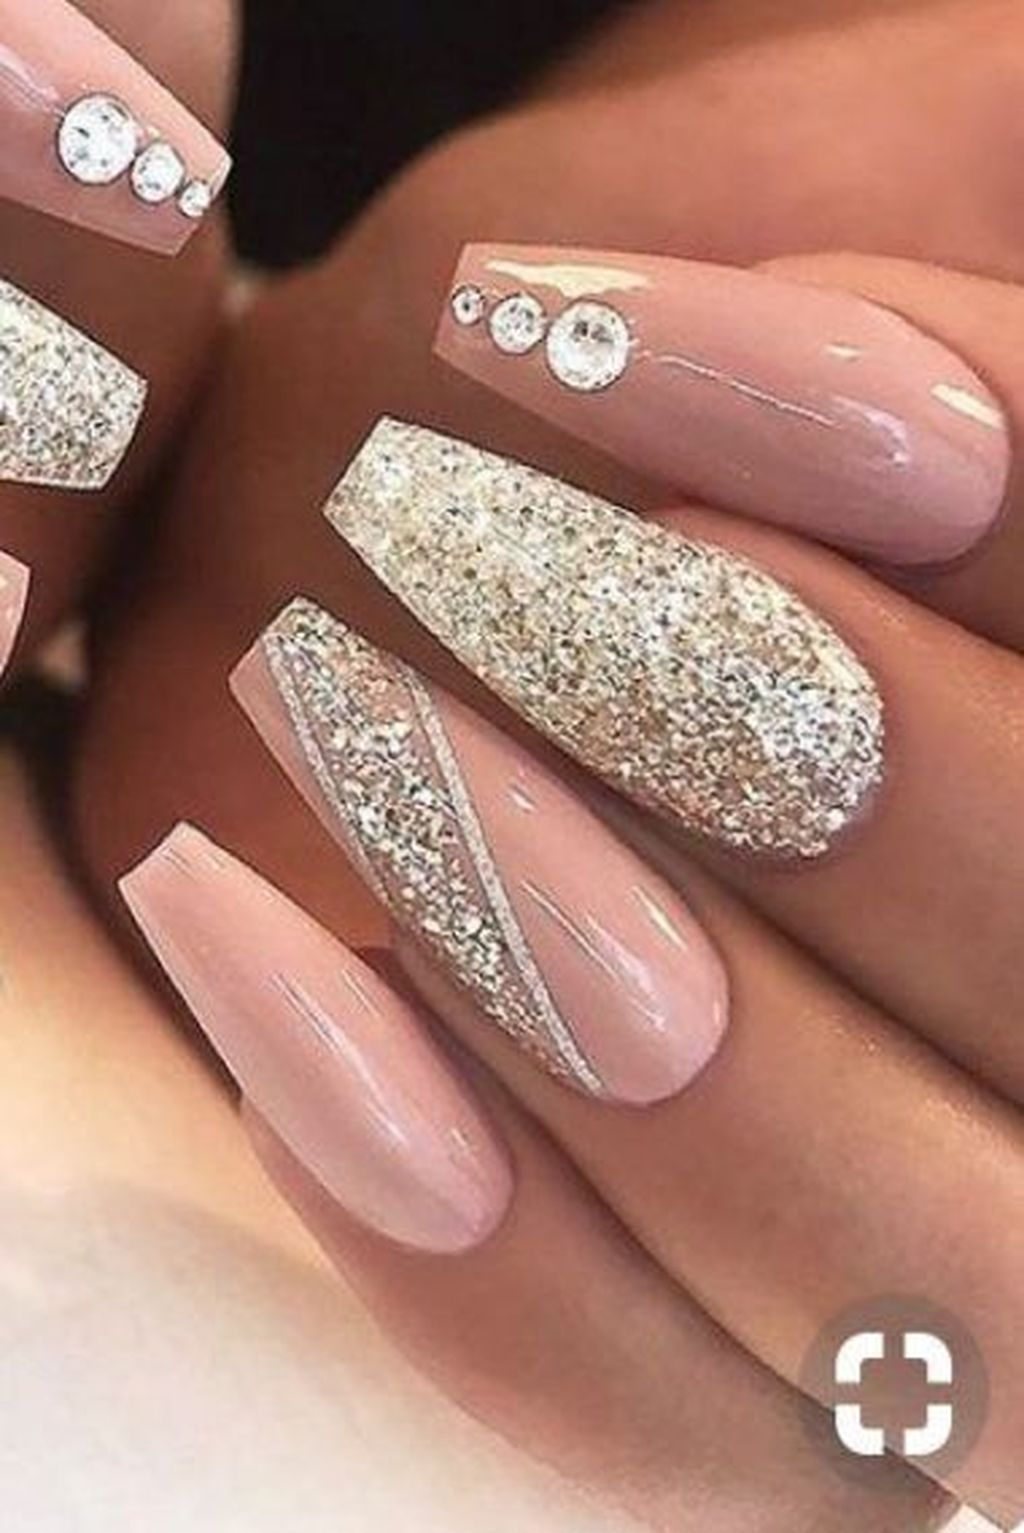 40 Lovely Glitter Nail Art Designs Ideas That You Will Love To Try In 2020 Long Acrylic Nails Stylish Nails Pink Nails